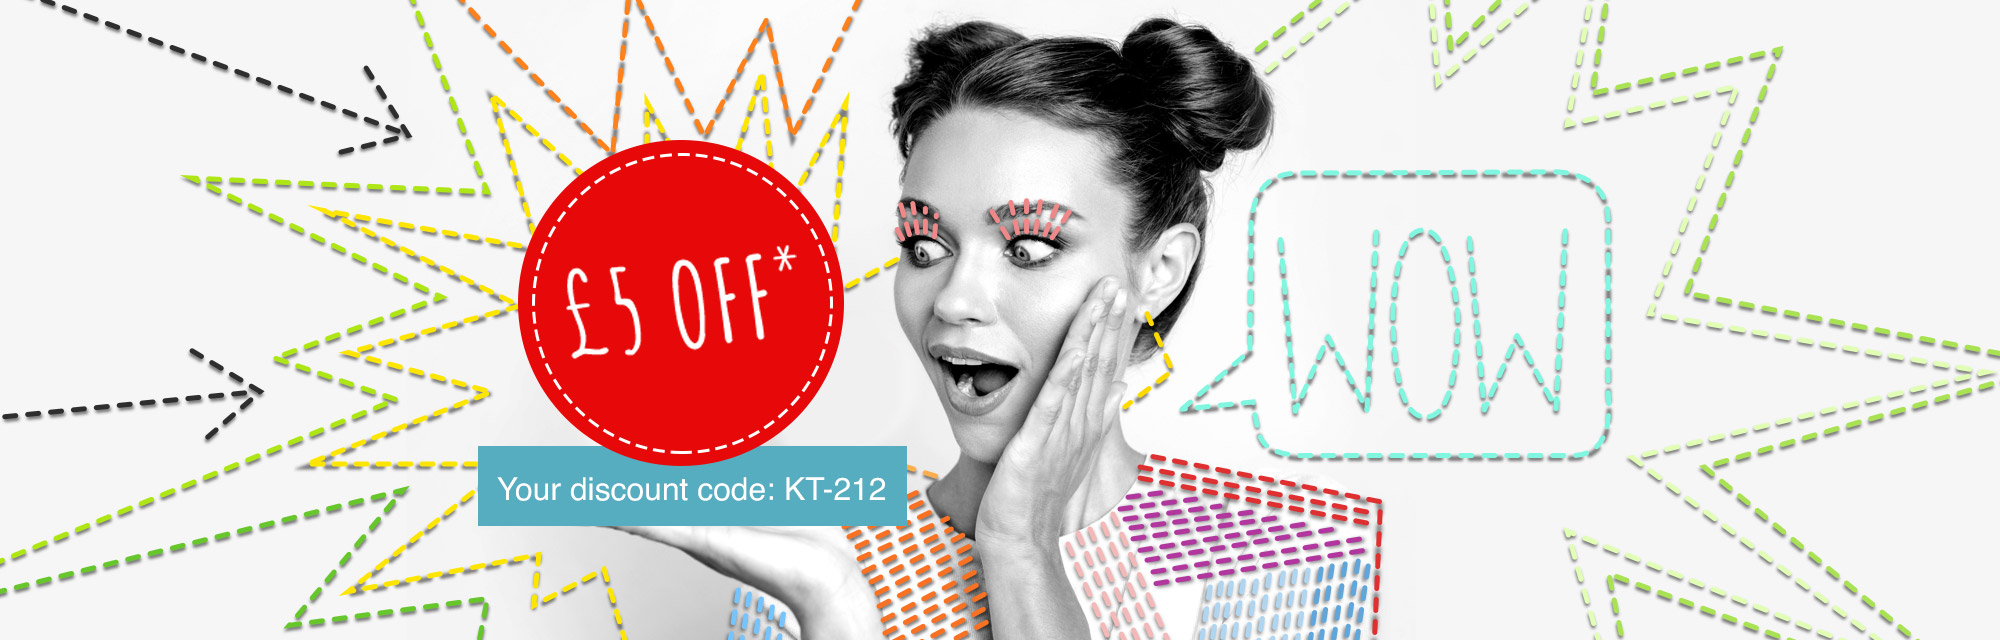 Your £5 discount voucher is waiting for you!